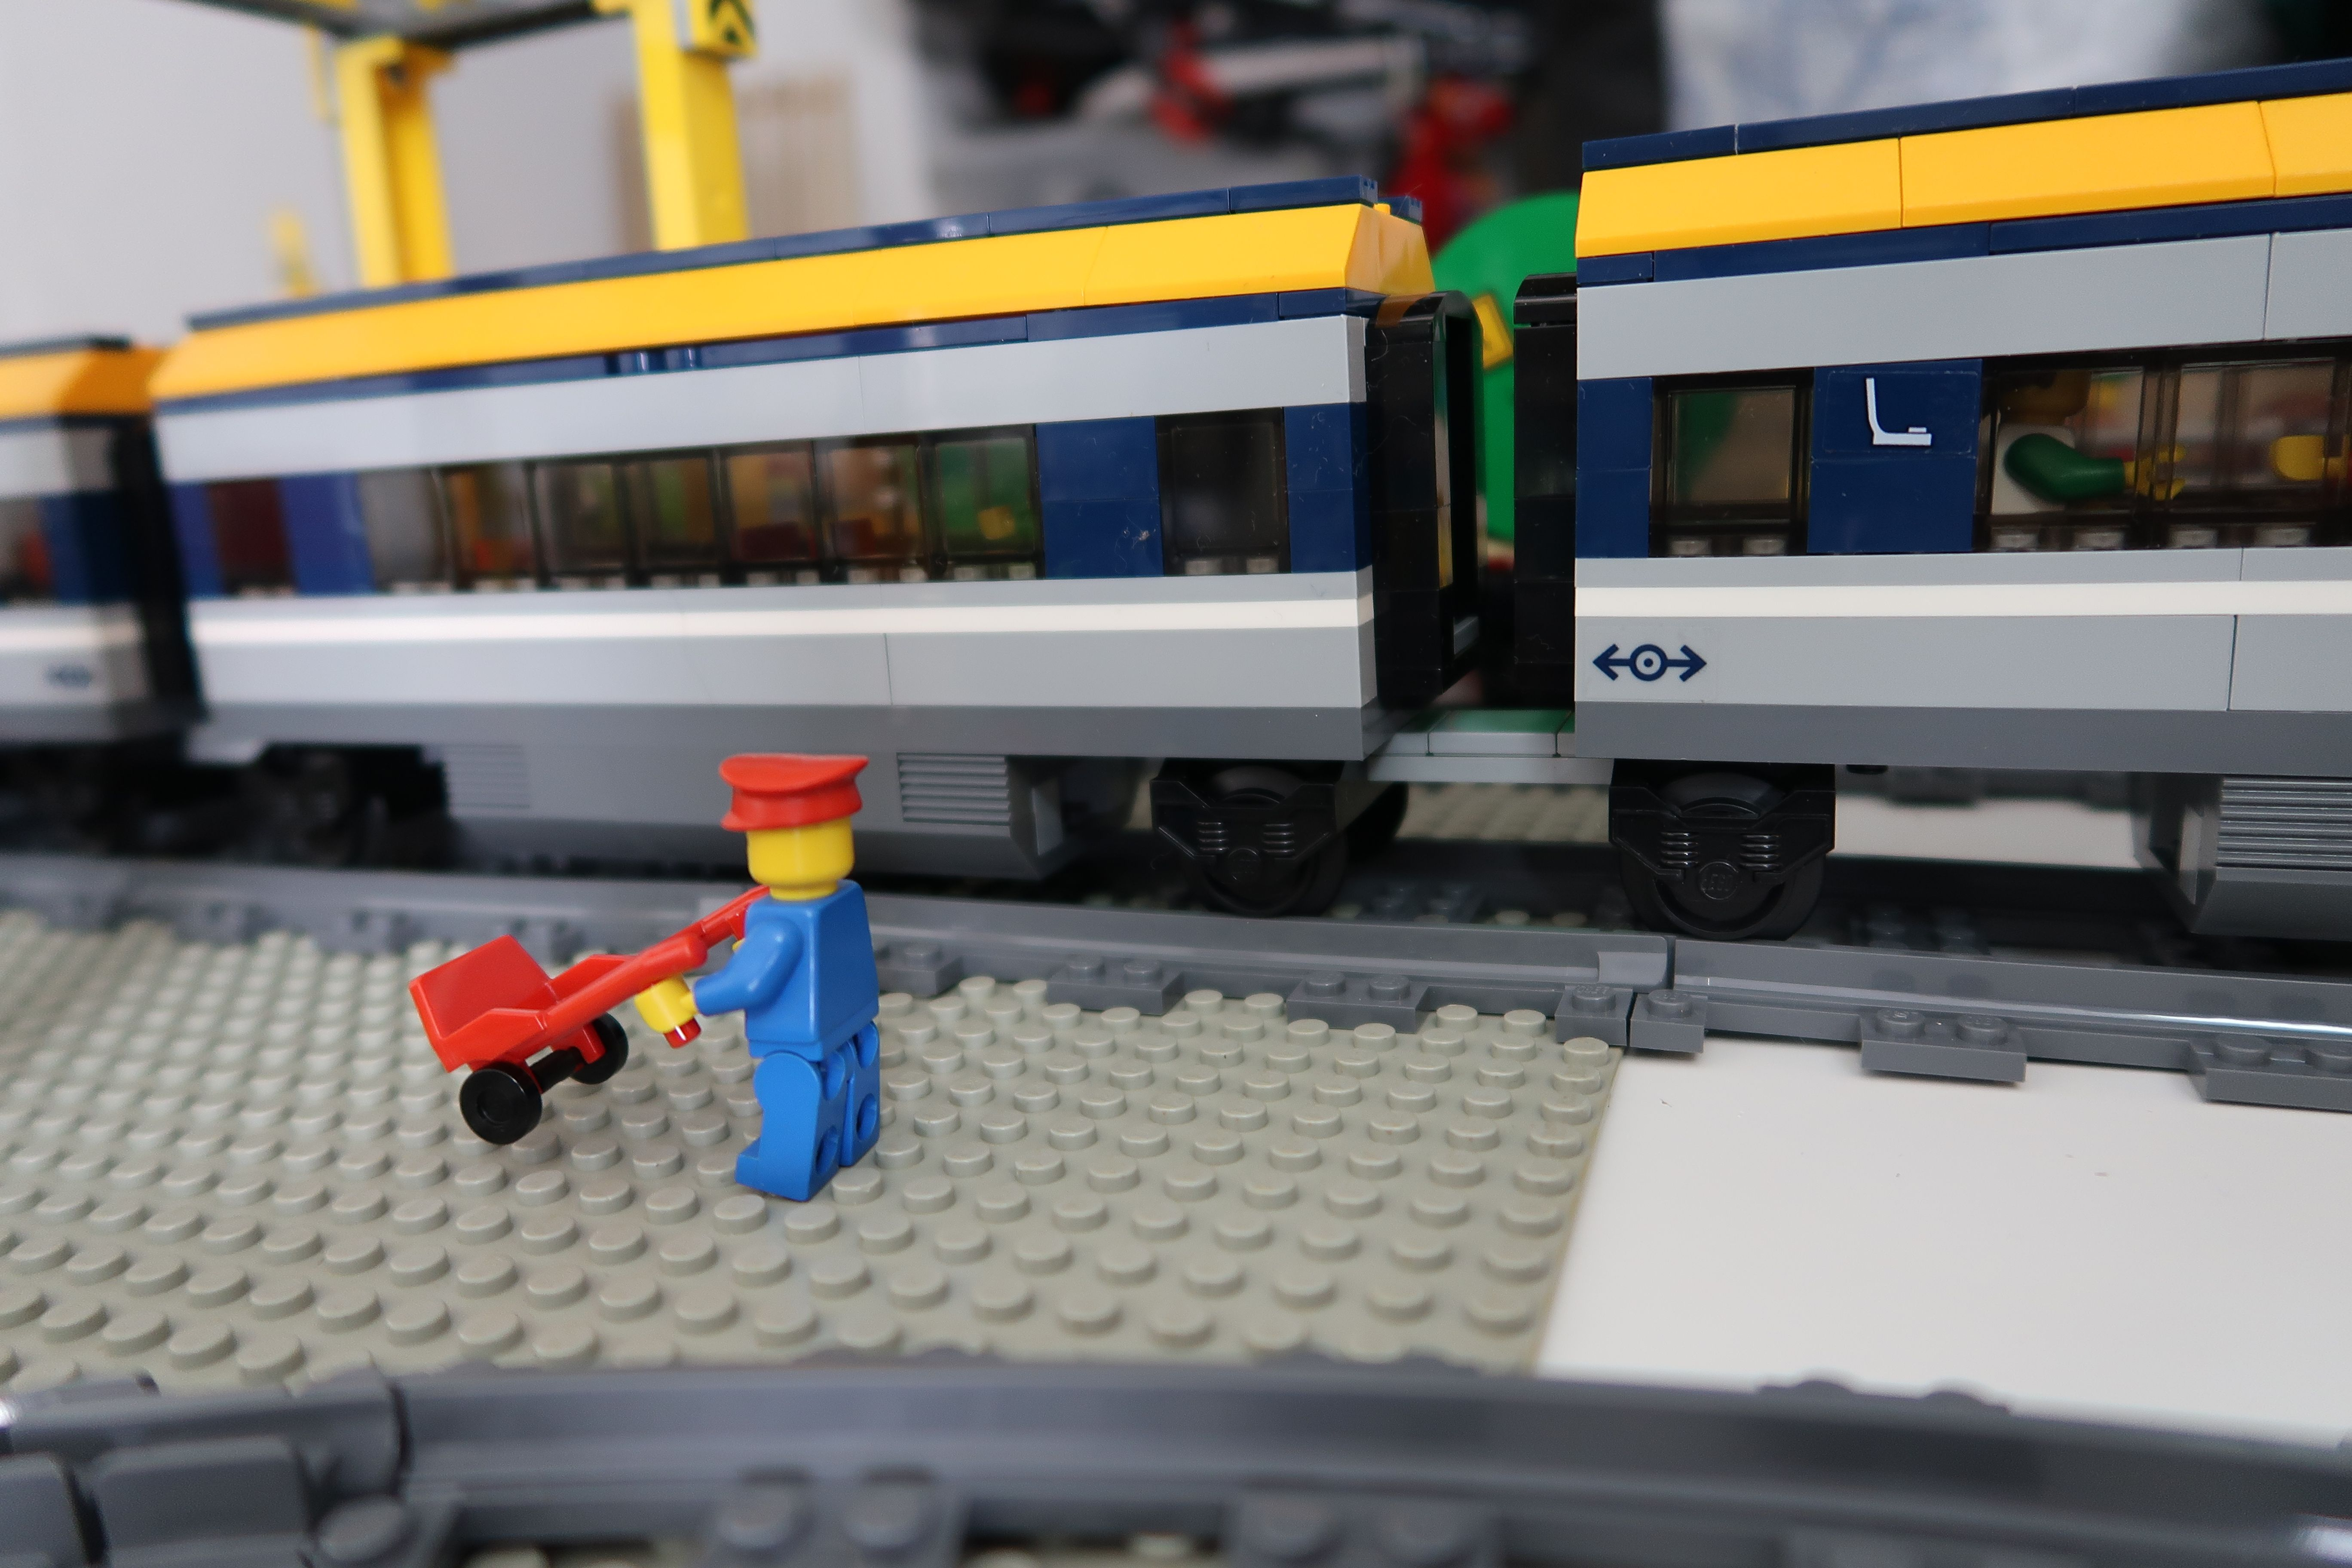 Lego City Passenger Train How To Modify With Jacobs Bogies 60197 A Tutorial Video To Modify This Lego Train To Be A B Lego City Train Lego City Lego Trains